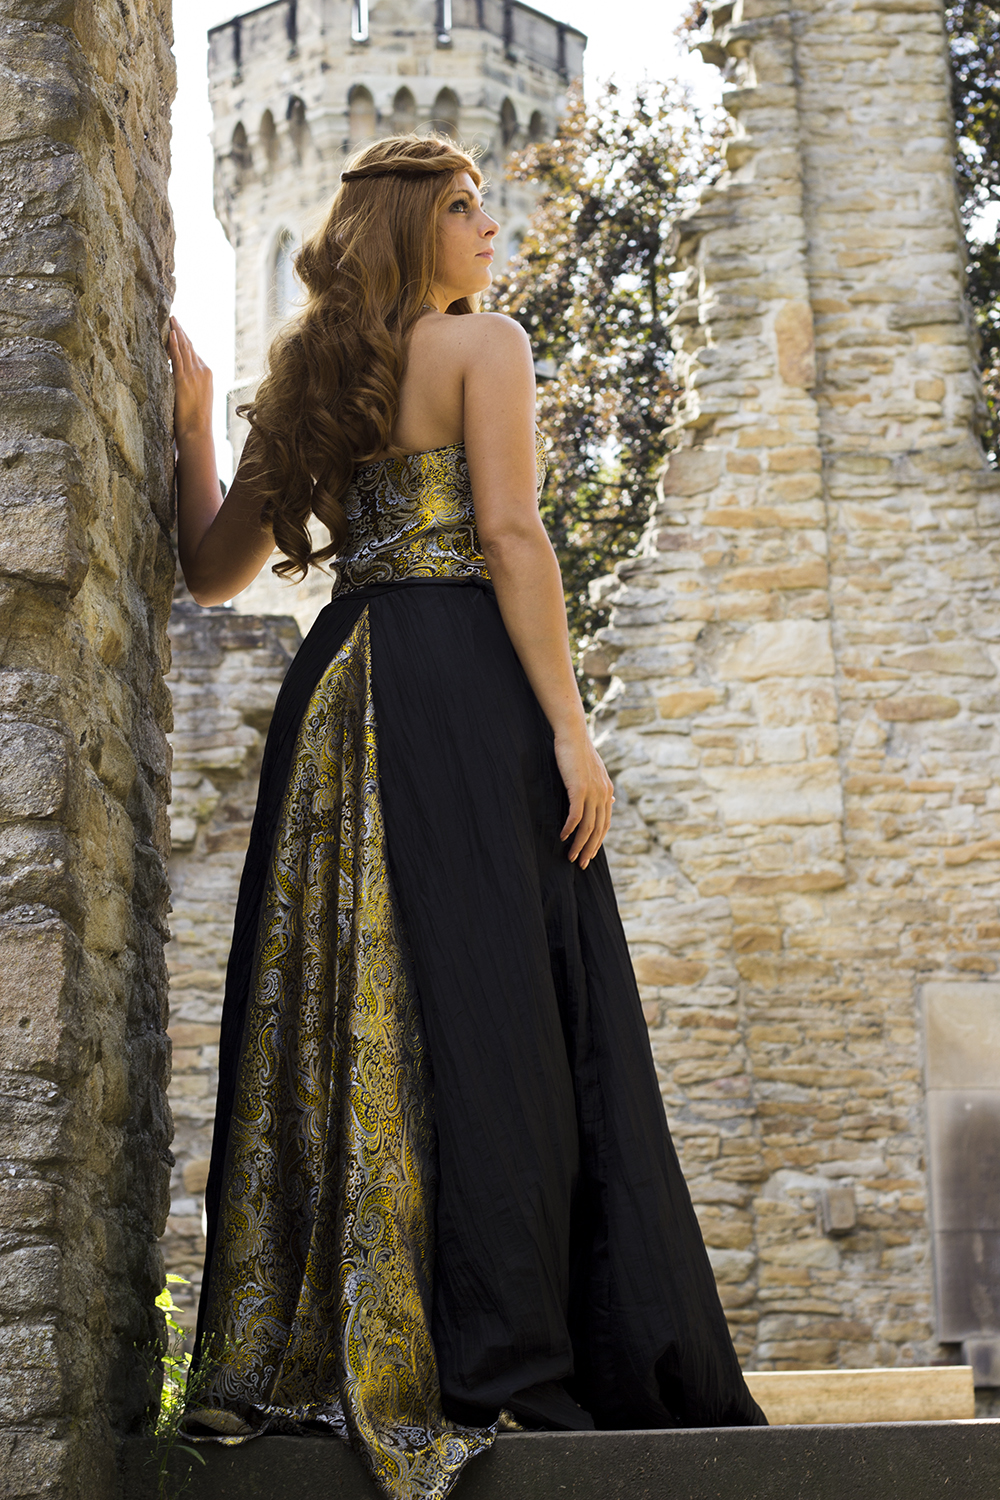 Margaery Tyrell - Black Dress by Dira-Chan on DeviantArt